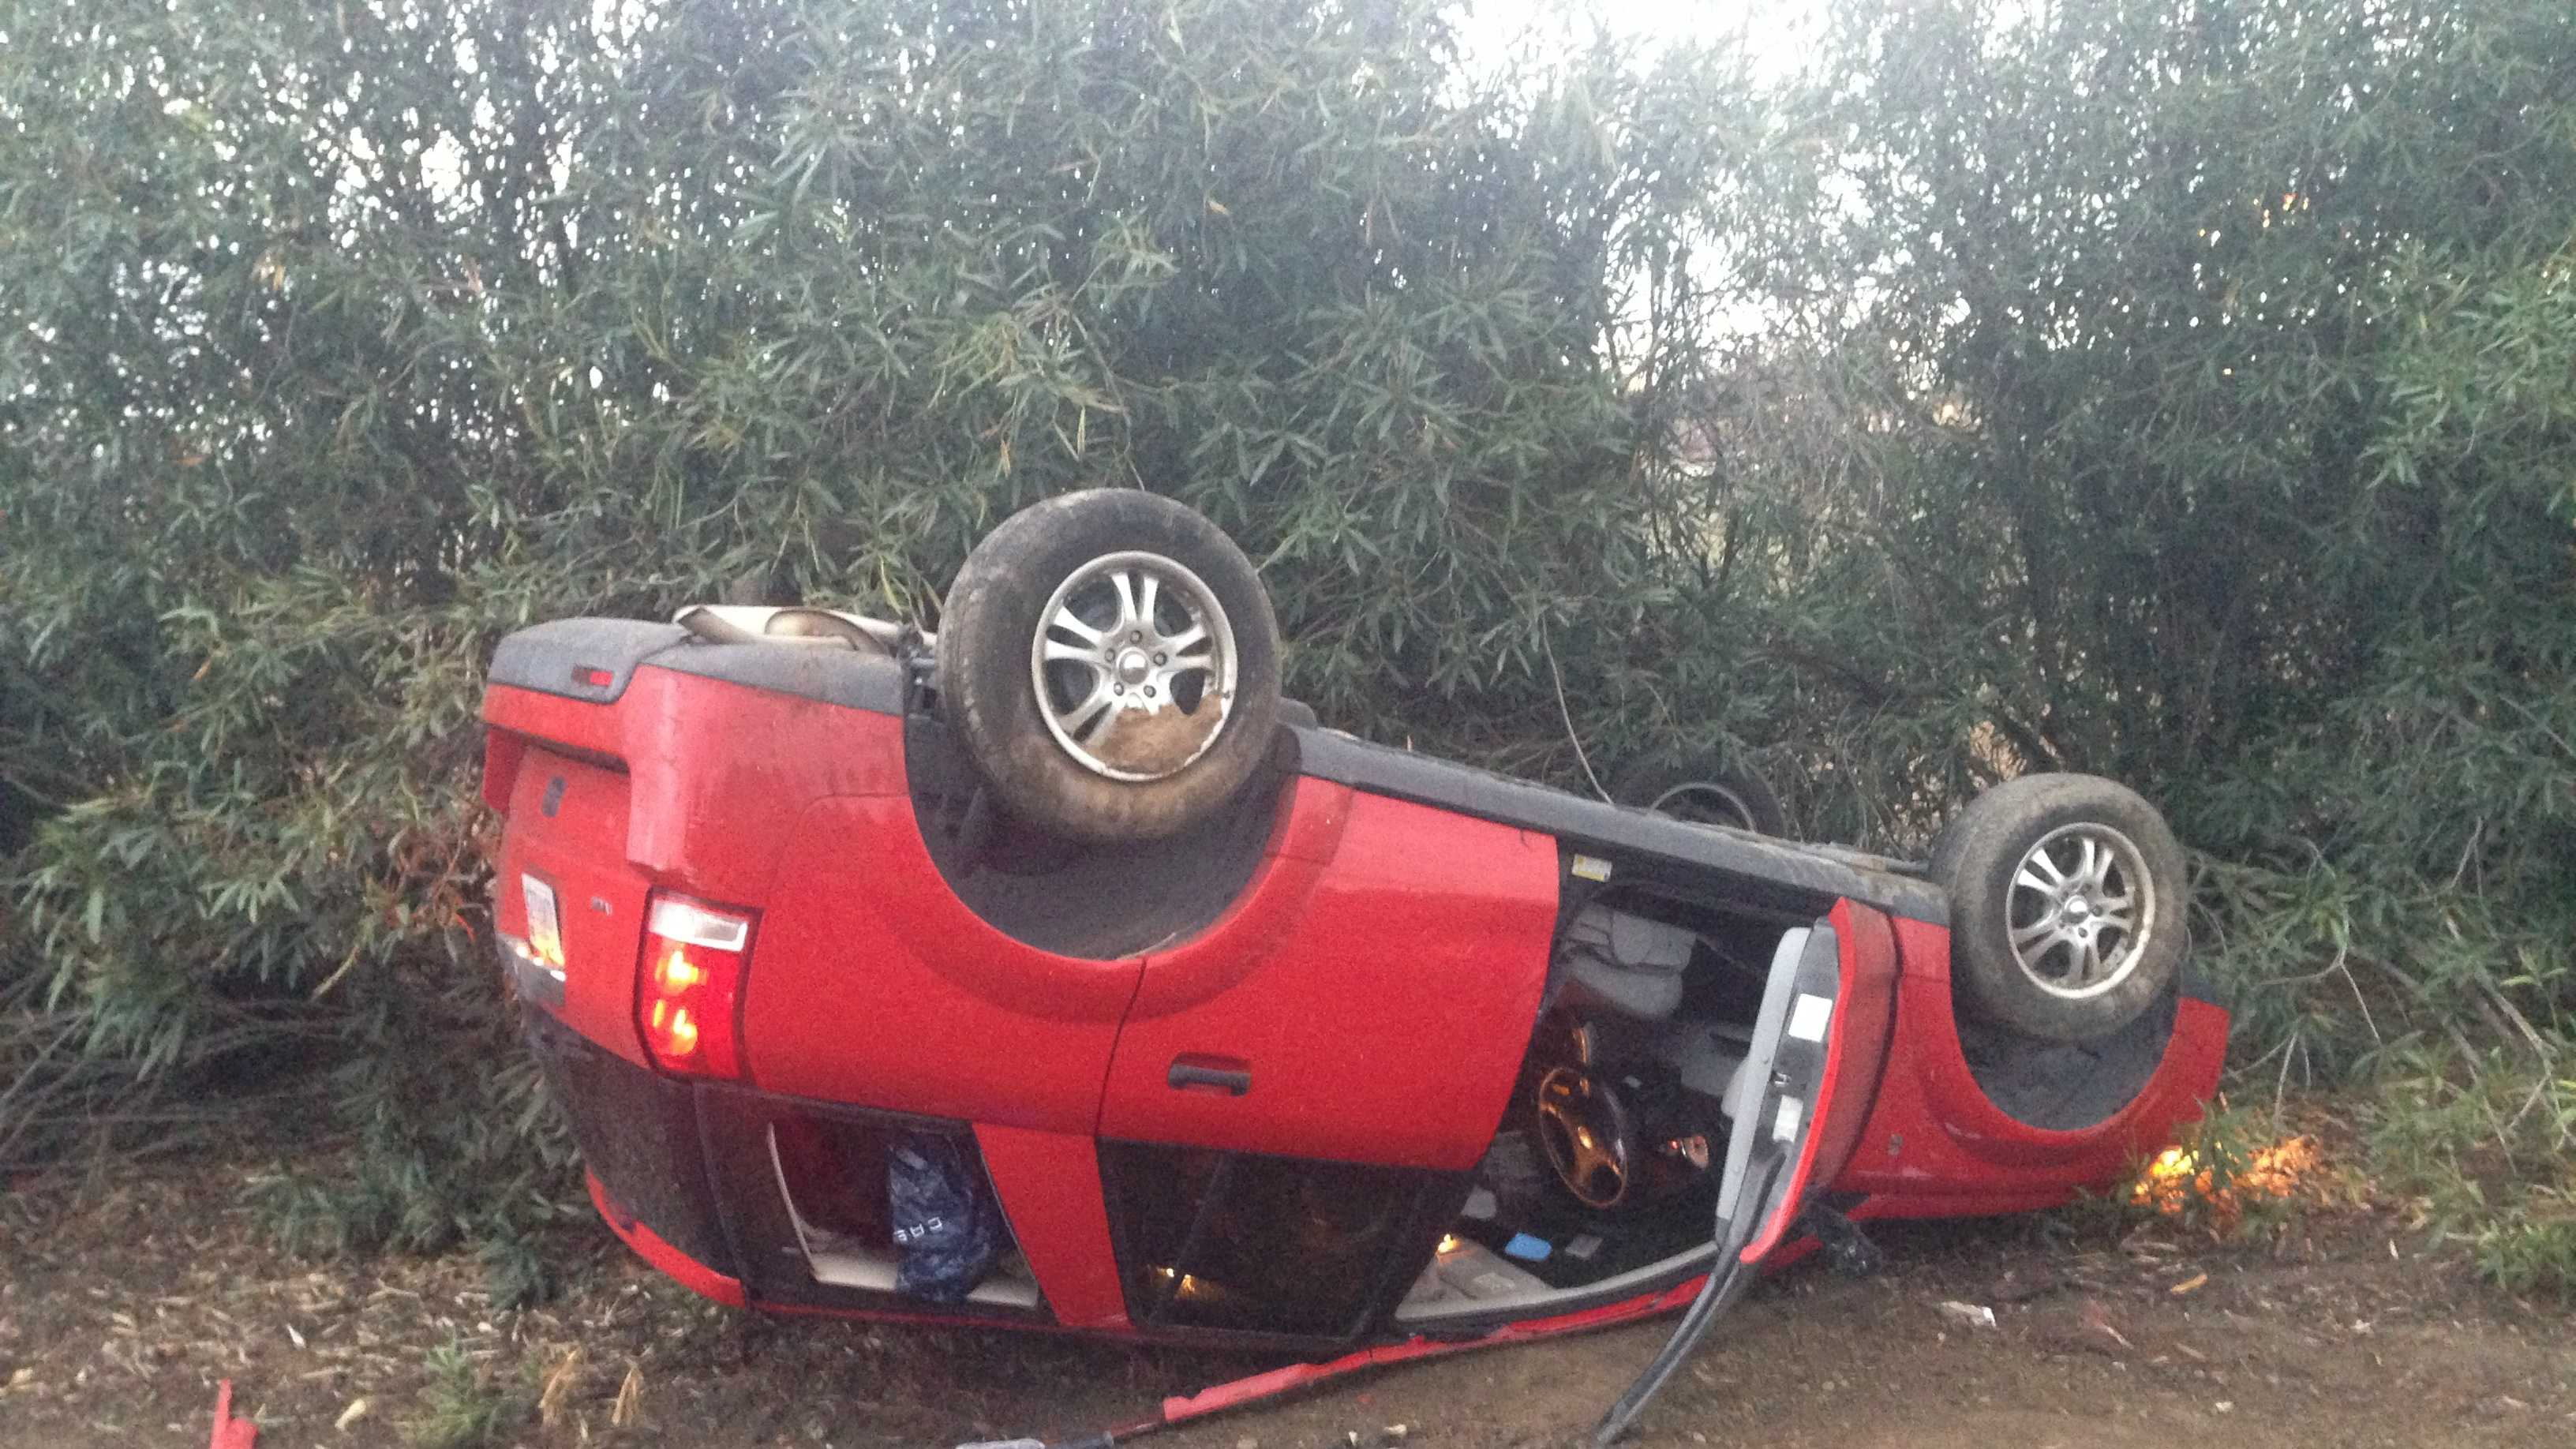 The driver of a red SUV lost control of her vehicle on the off-ramp at Exposition Boulevard and the Capital City Freeway, police said. No other cars were involved (Jan. 29, 2014).